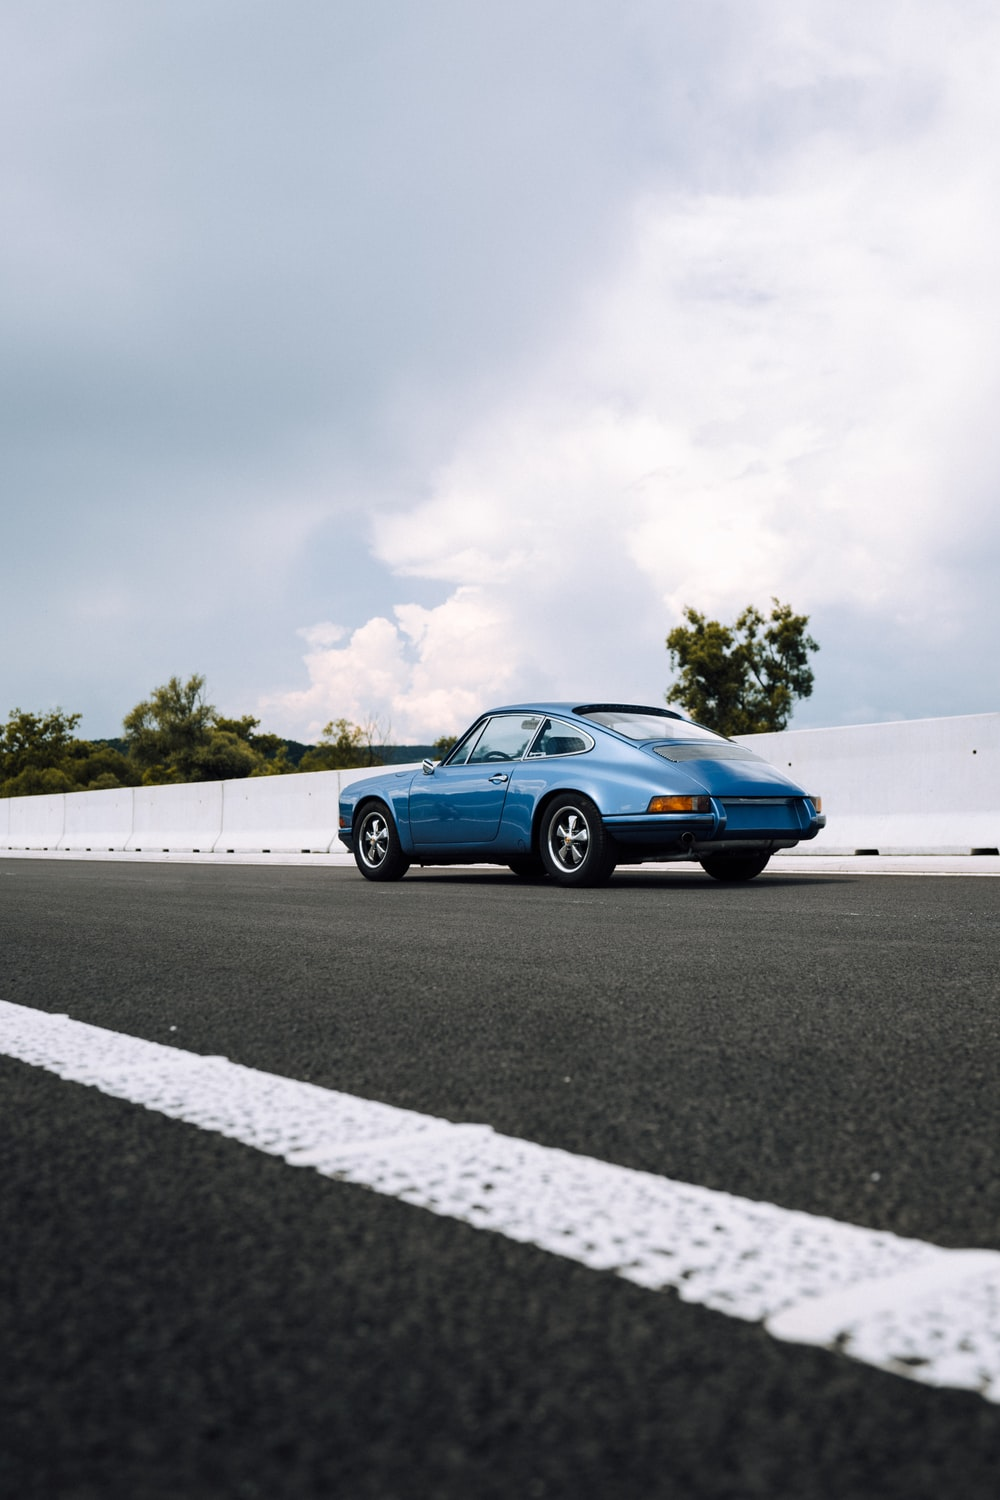 blue coupe on gray asphalt road under white cloudy sky during daytime